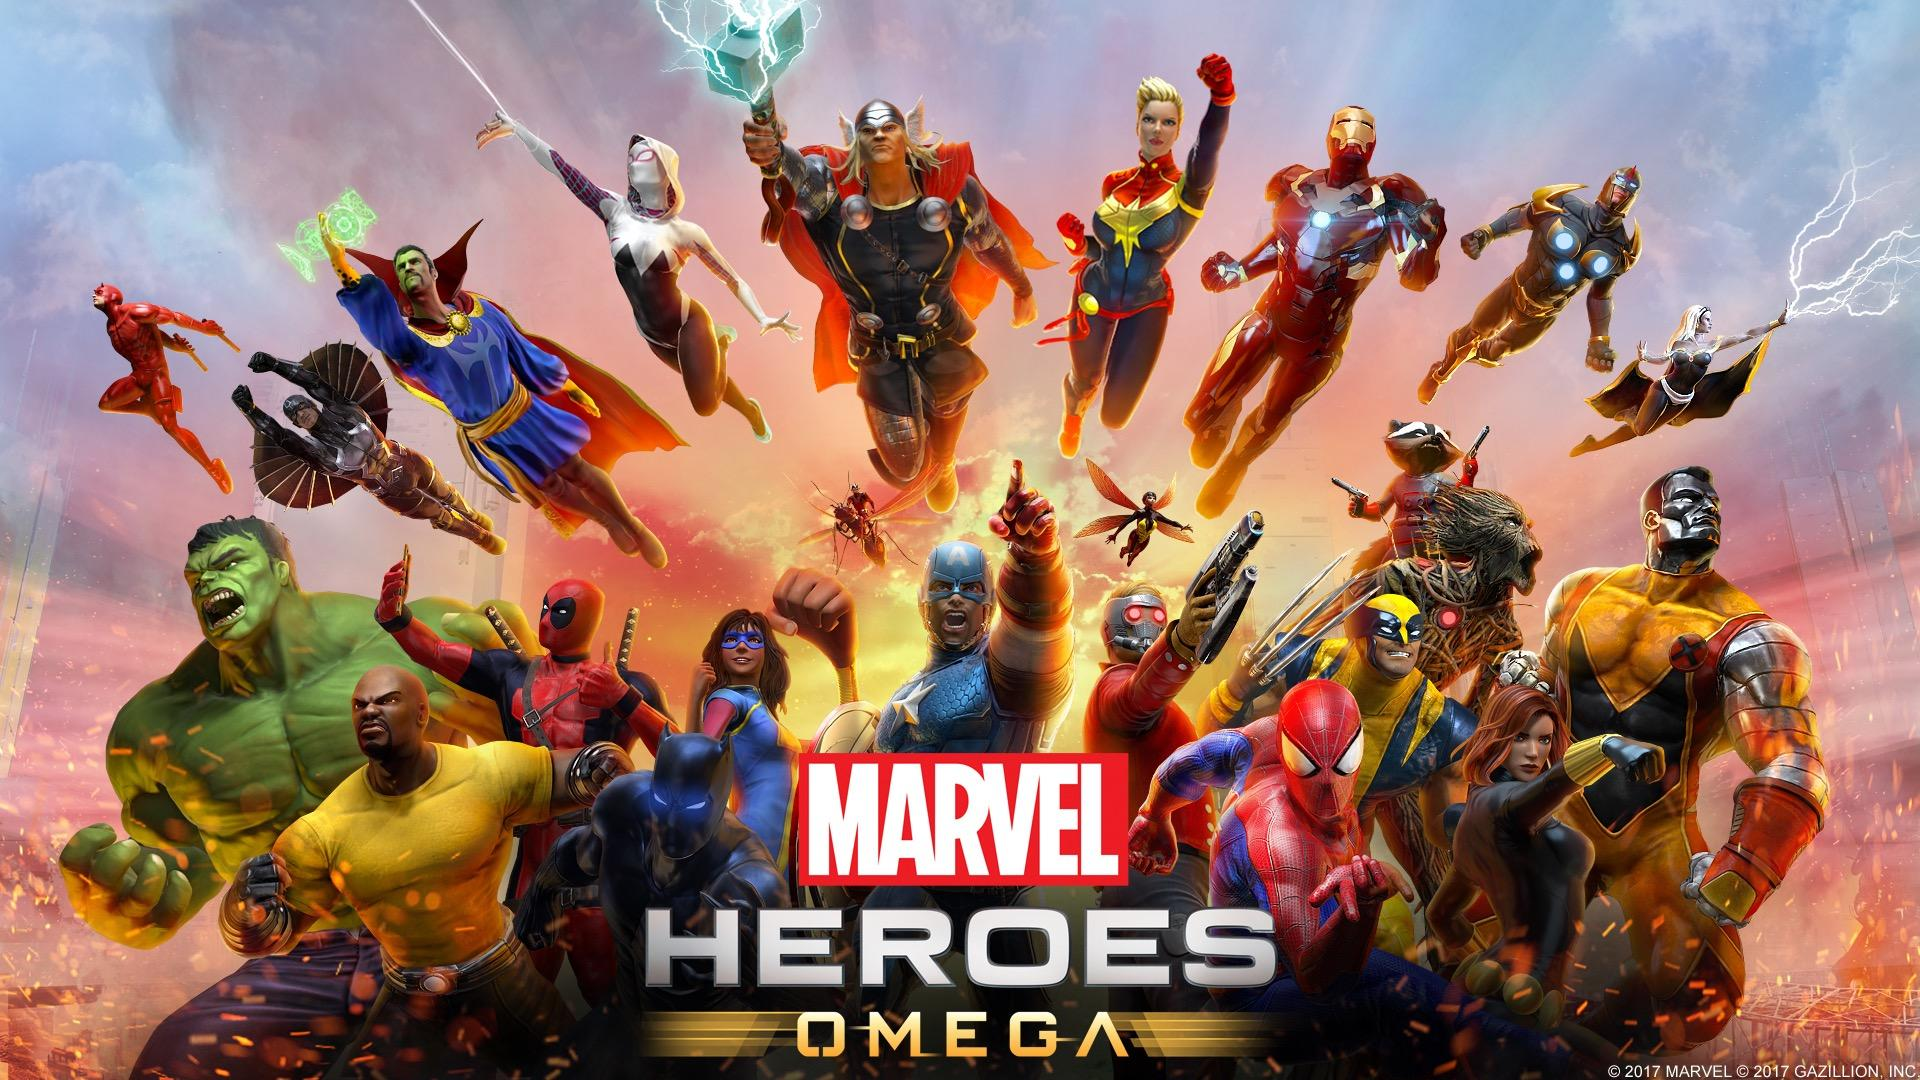 Marvel Heroes Omega Makes Its Way To PS4 And Xbox One Soon